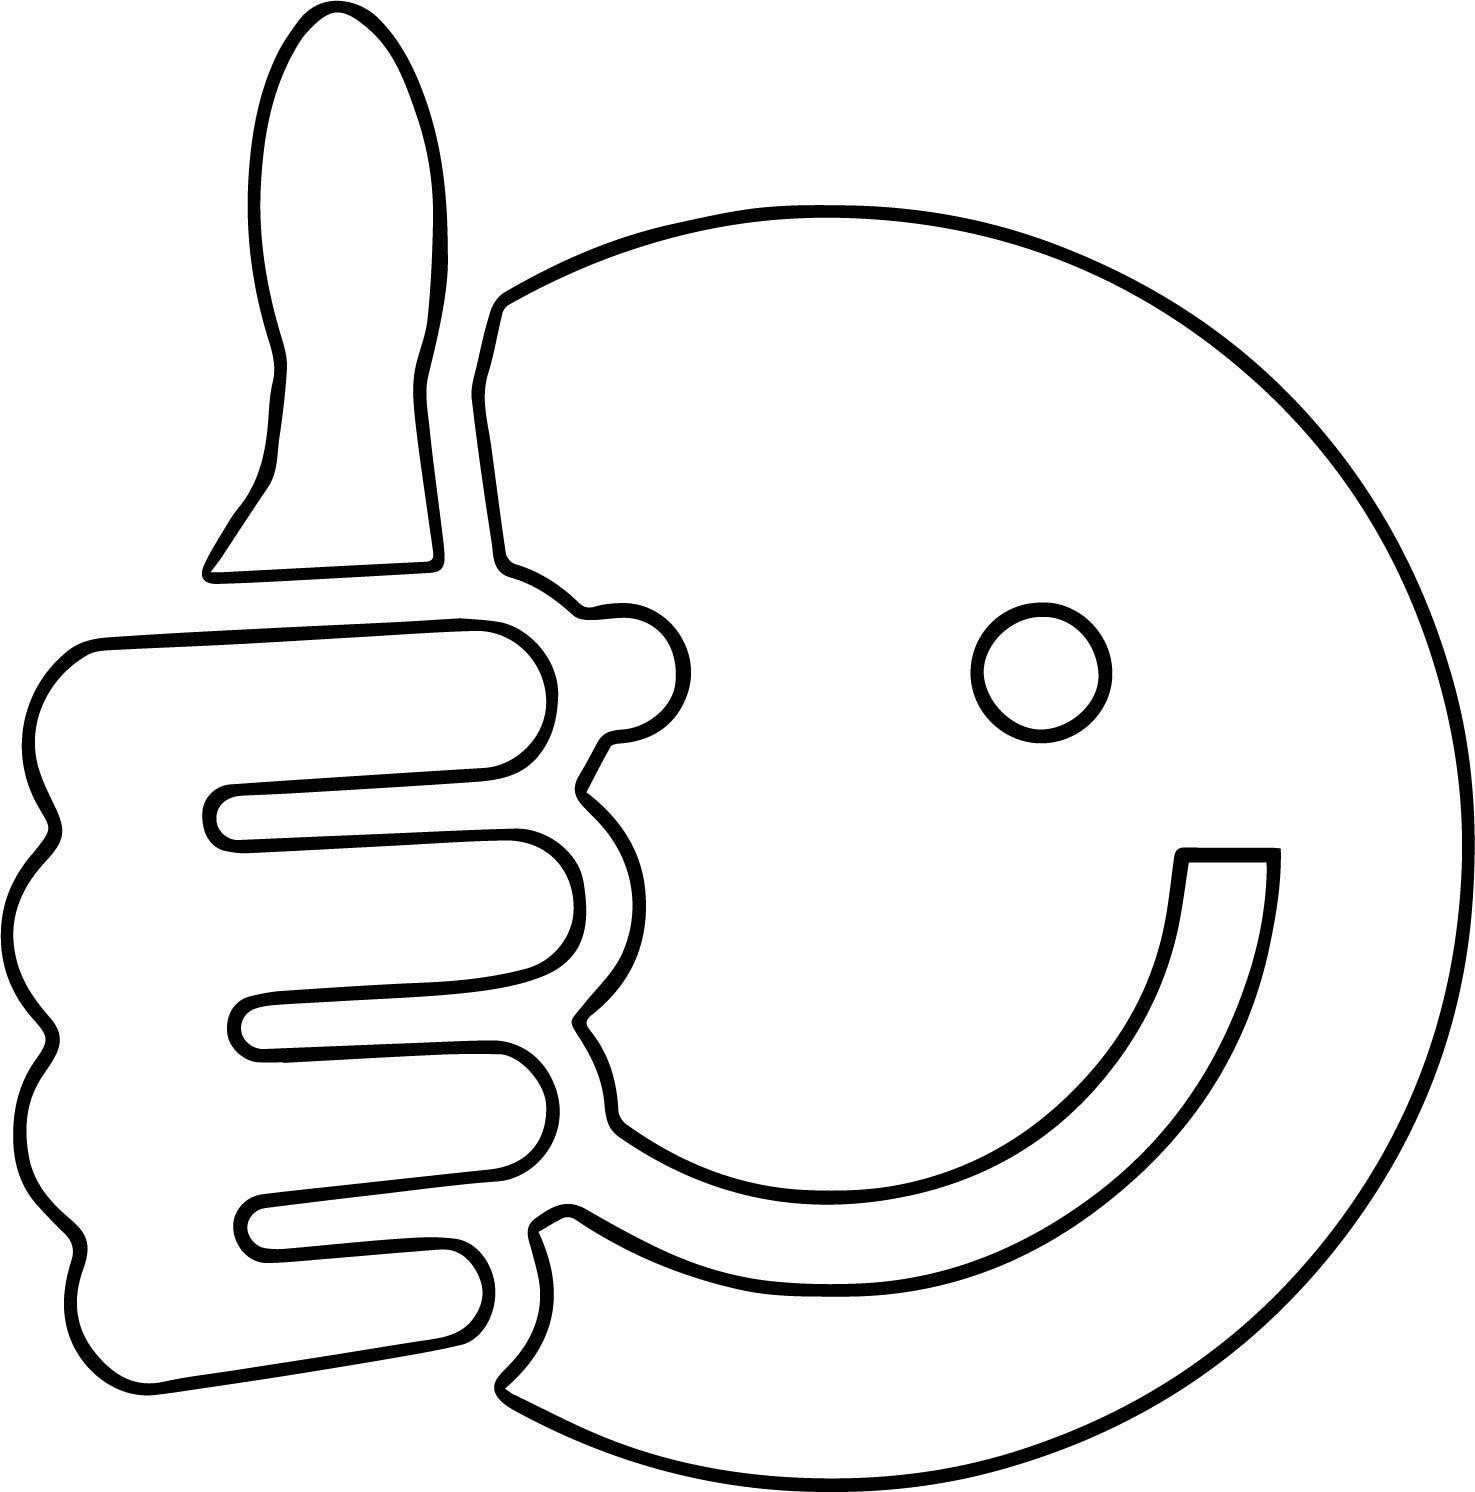 Smiley Face Clip Art Thumbs Up Free Images Coloring Page